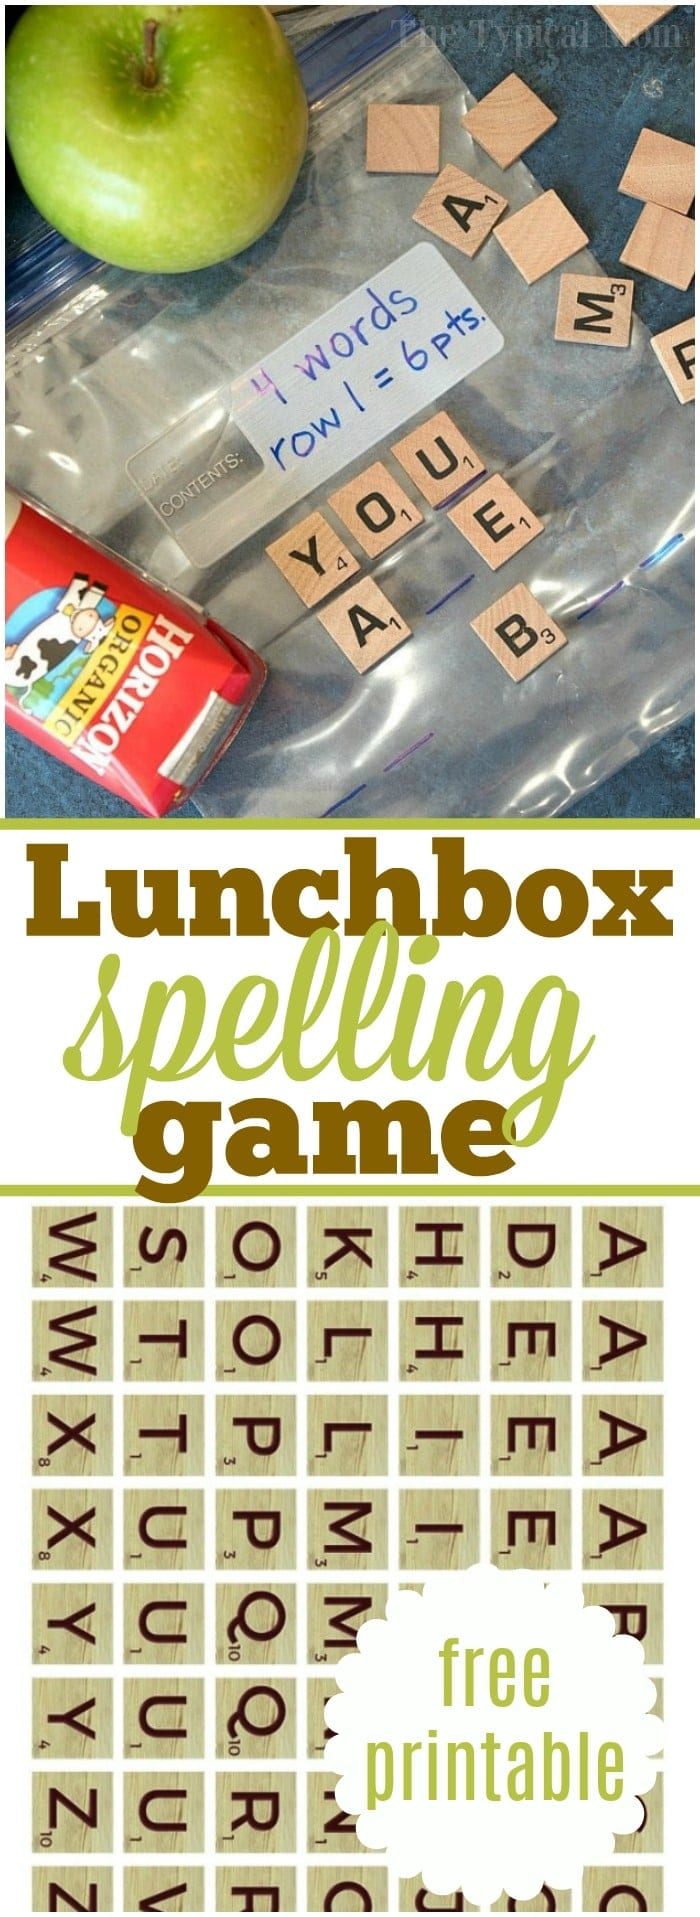 Free Lunch box game for kids has everyone talking! My kids and their friends love playing each day with these printable Scrabble tiles. #lunchbox #game #notes #printable